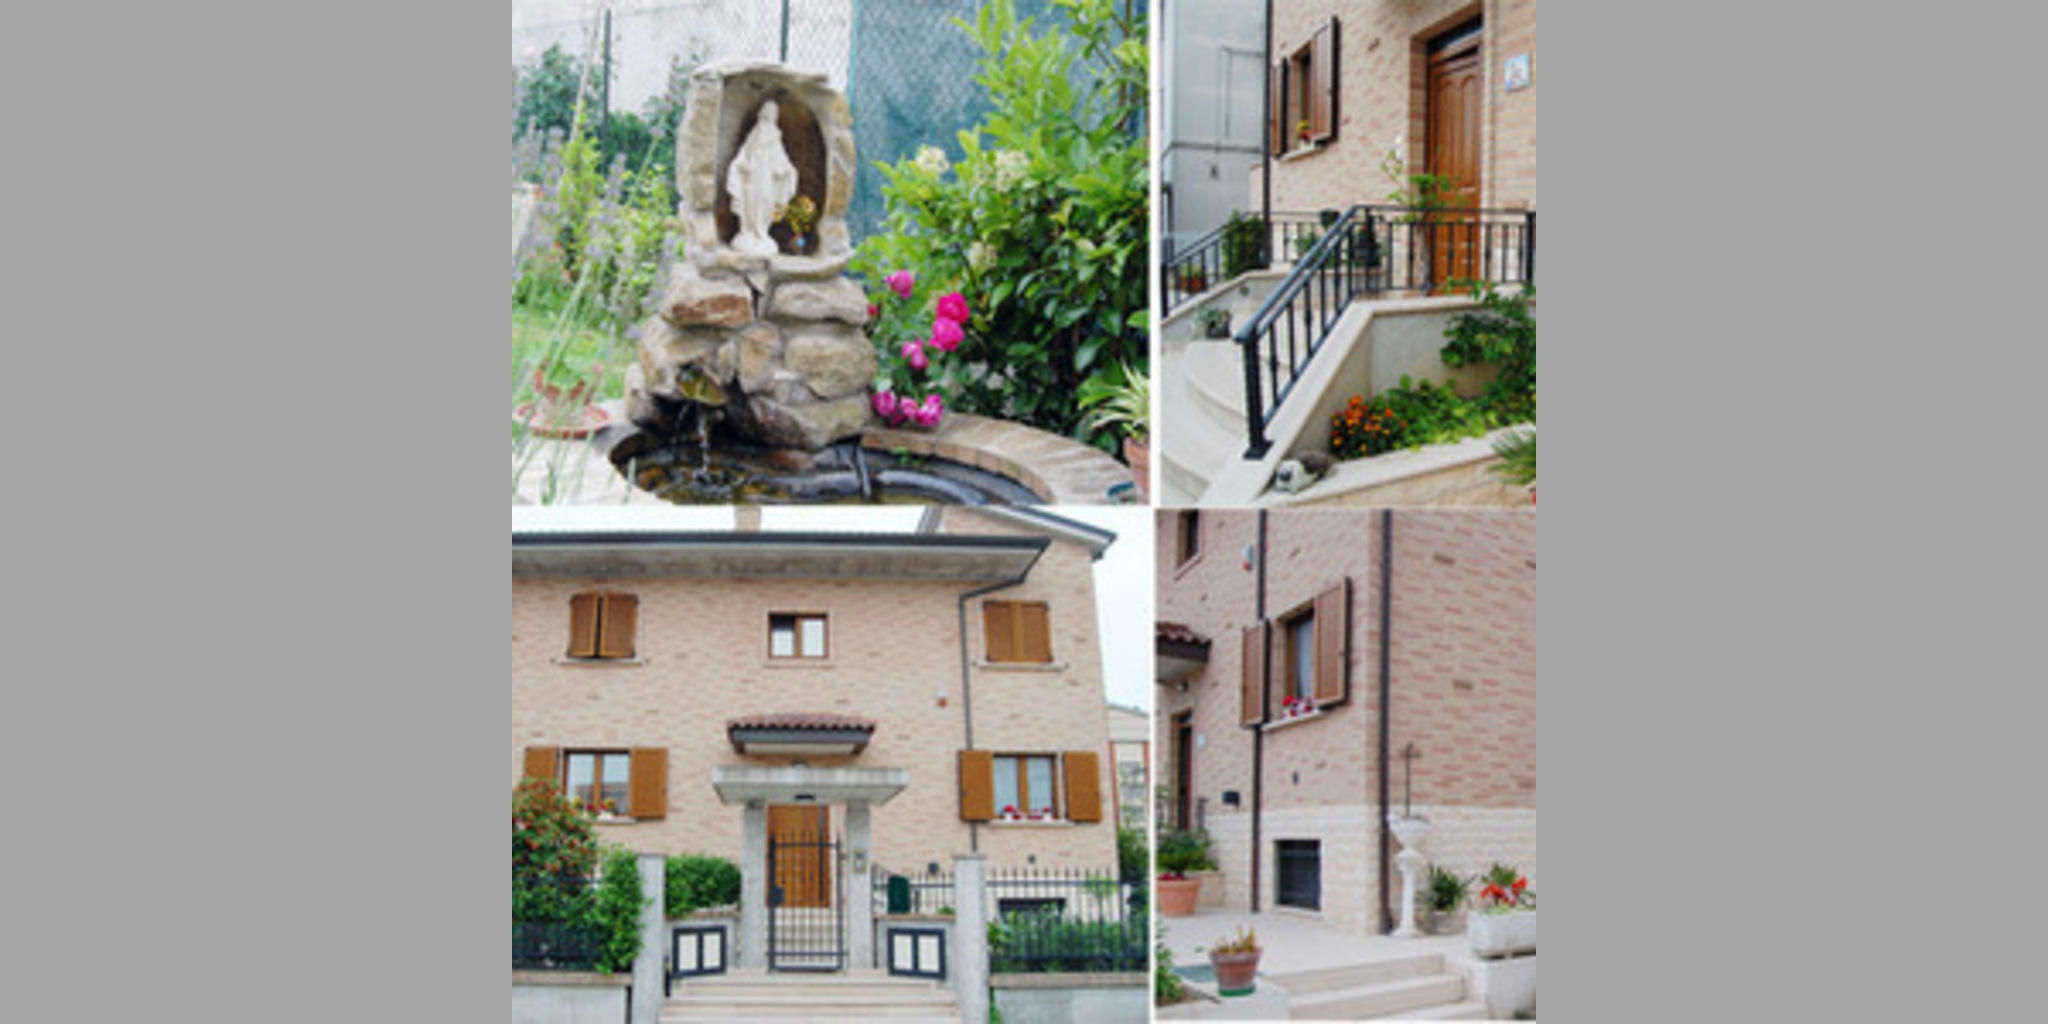 Bed & Breakfast Civitanova Marche - Civitanova